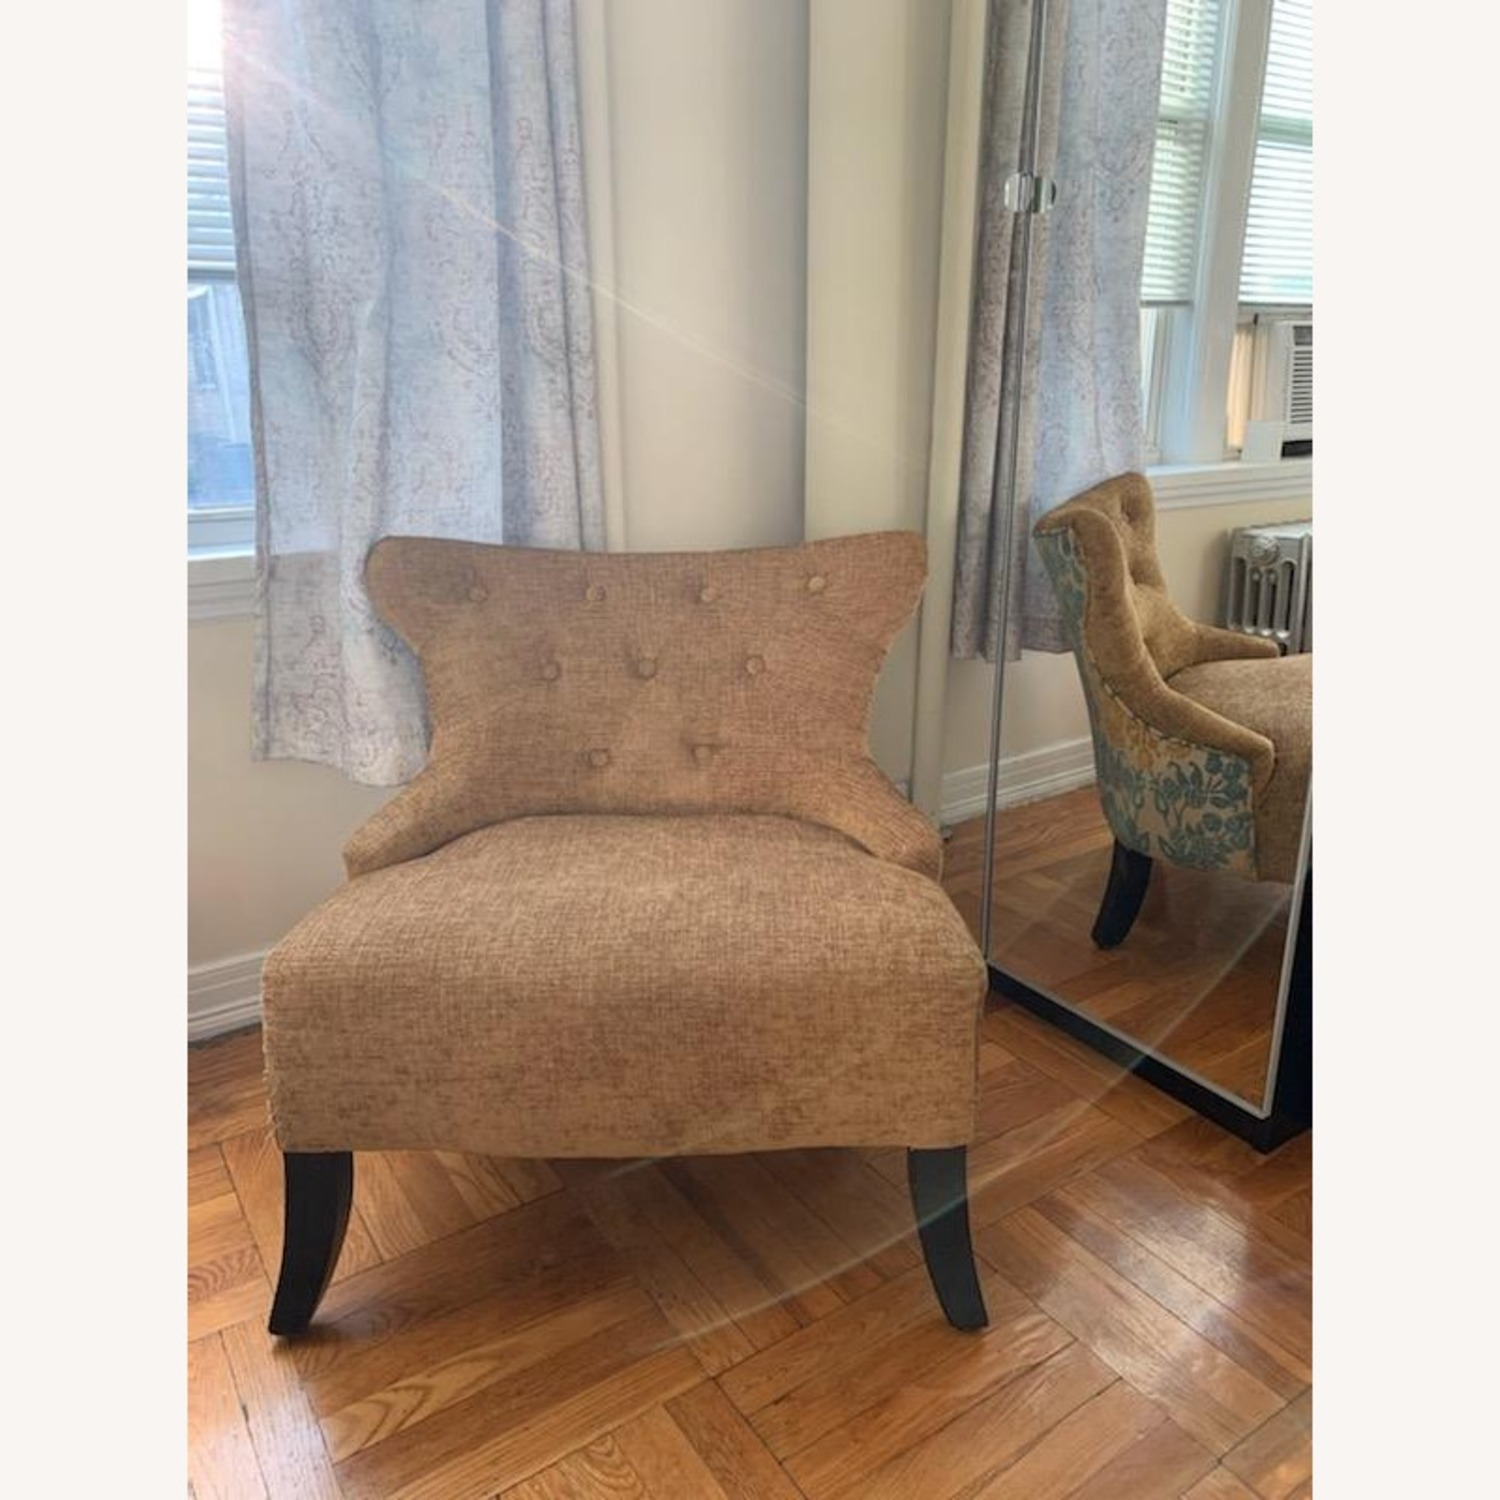 Pier 1 Imports Accent Chair - image-1